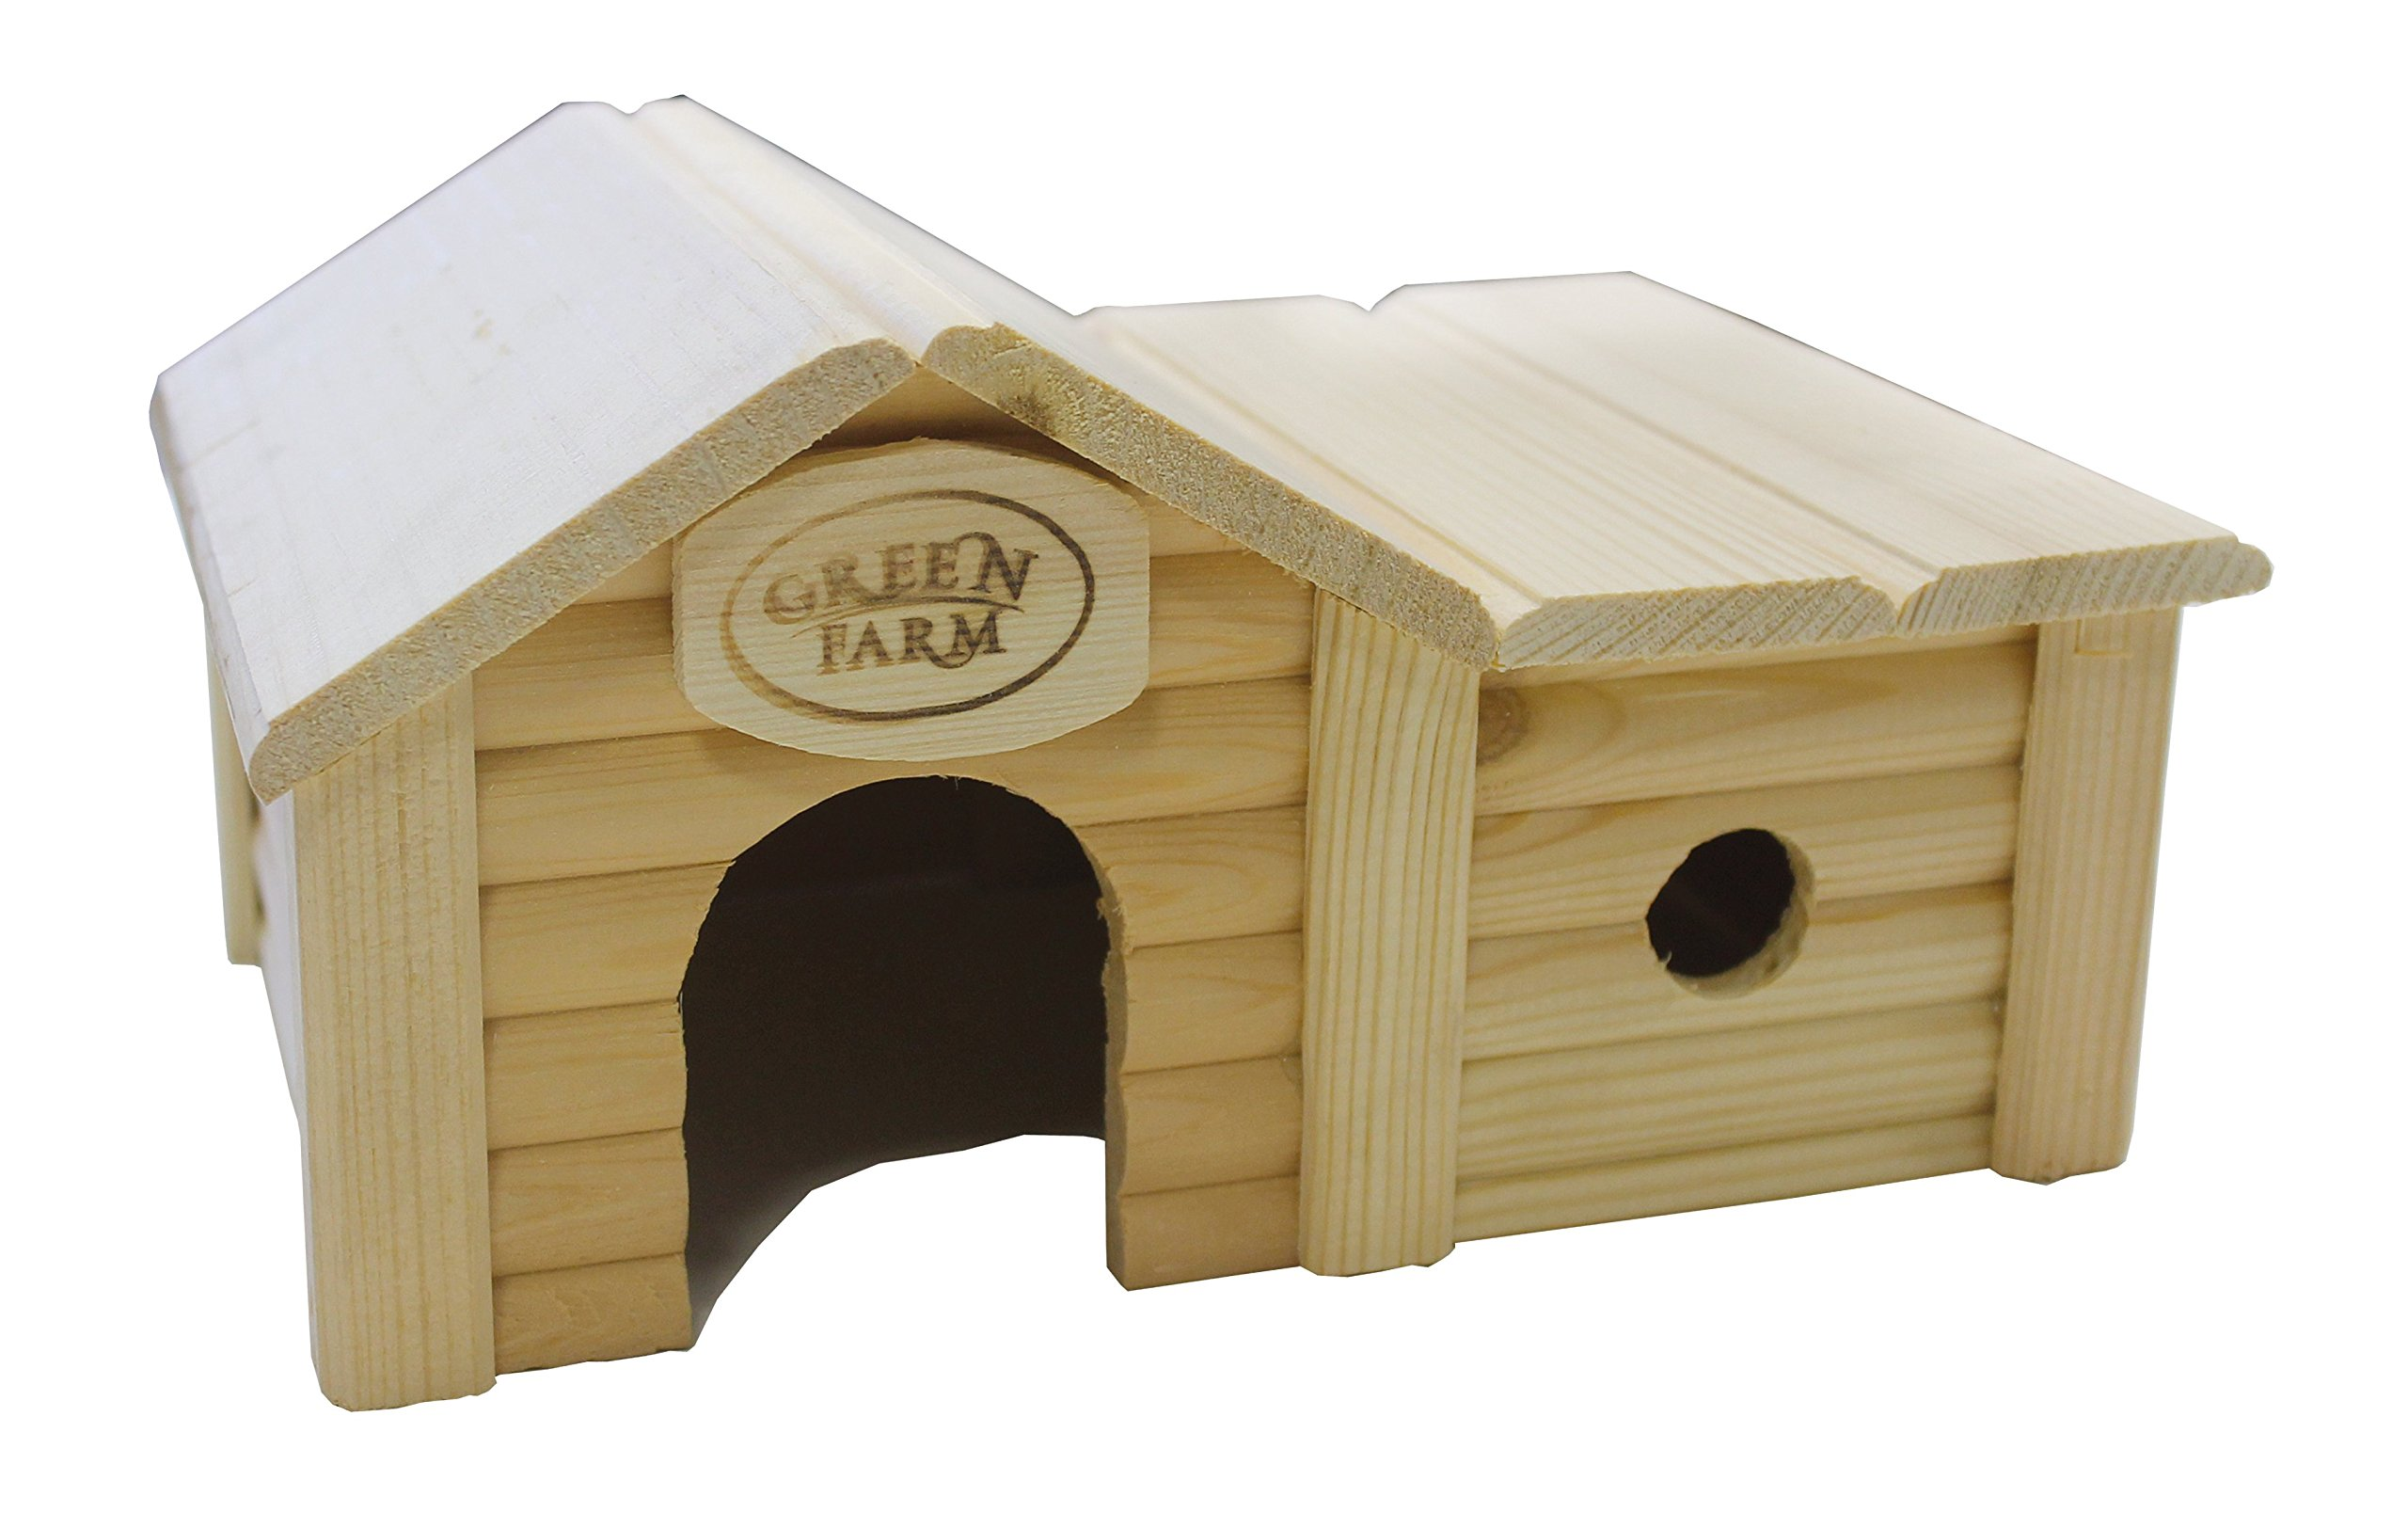 Green Farm Small Animal House with Annex for Hamsters and Mice by Green Farm (Image #1)